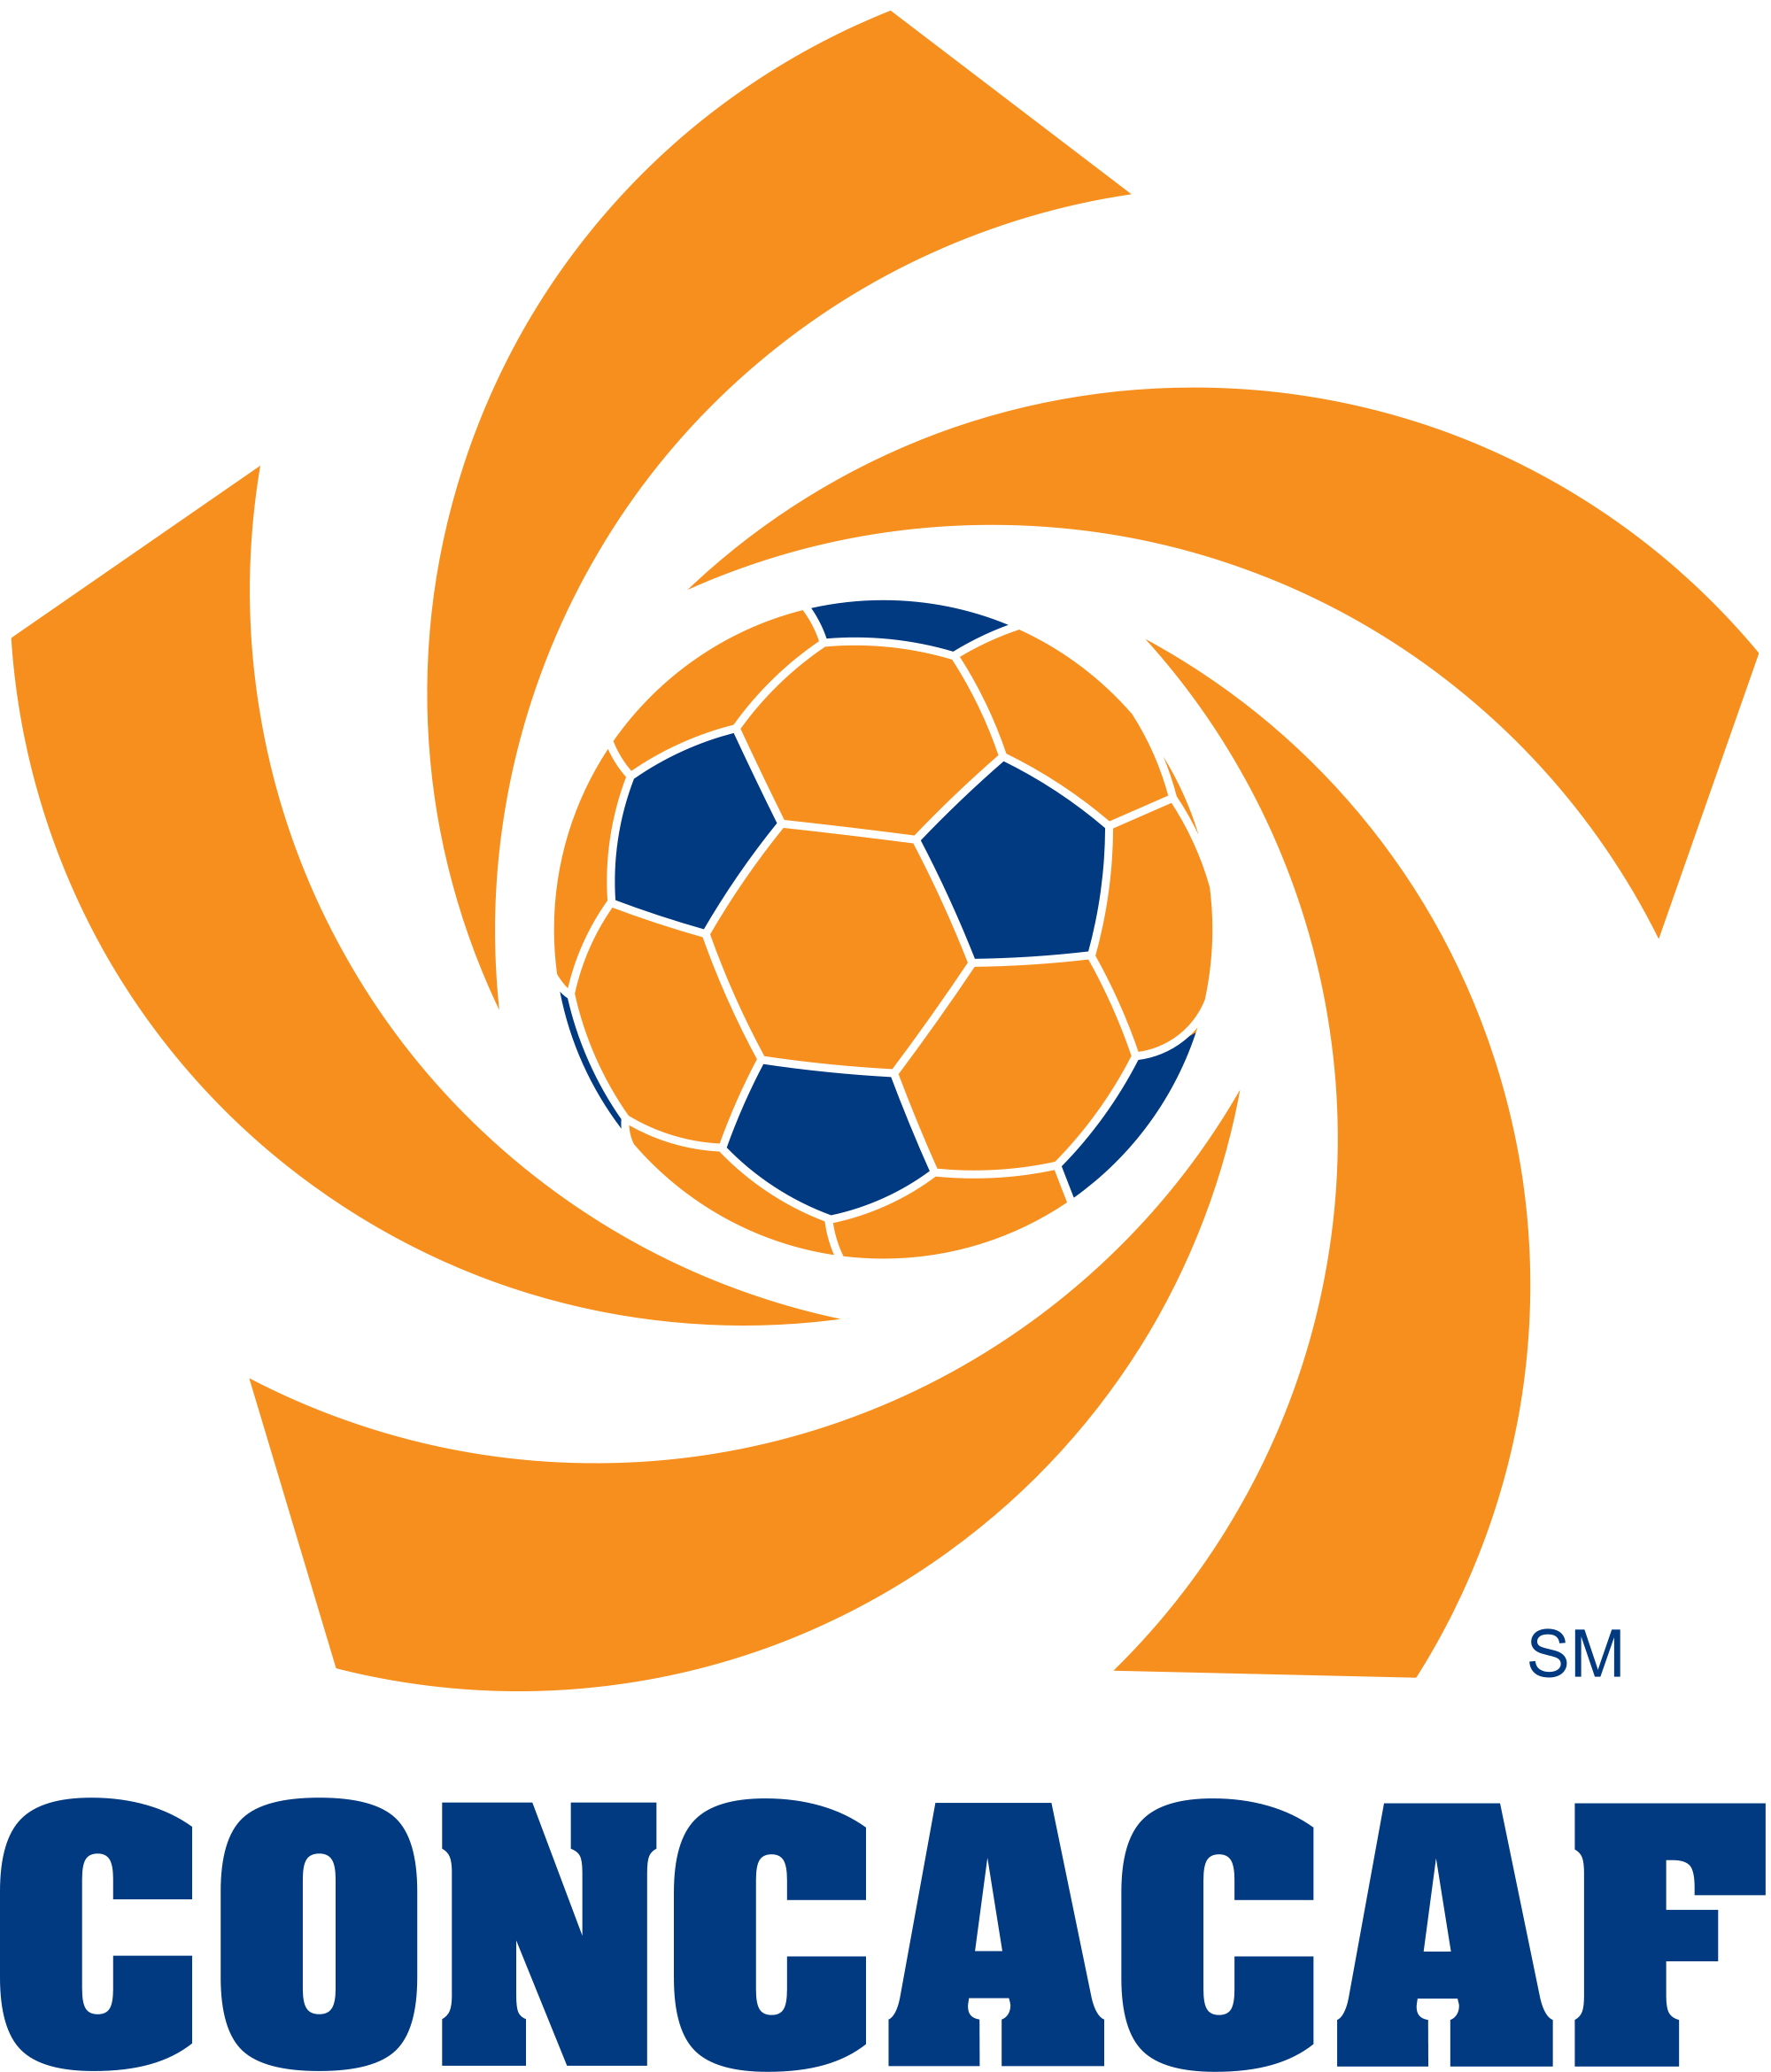 concacaf logopng ��� ���� ����